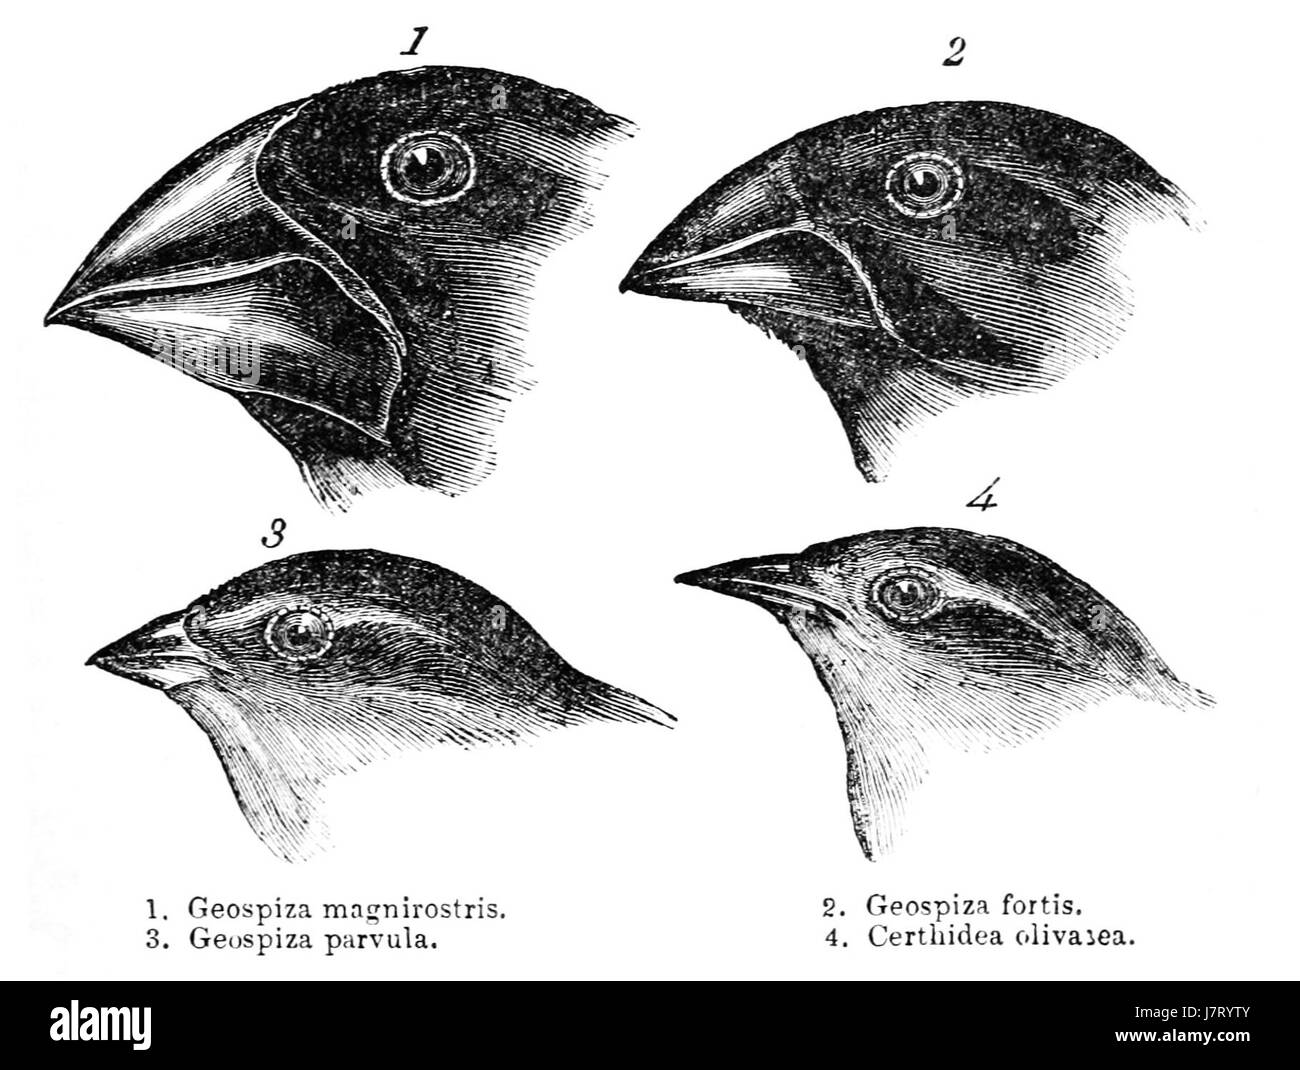 Darwin's finches by Gould - Stock Image